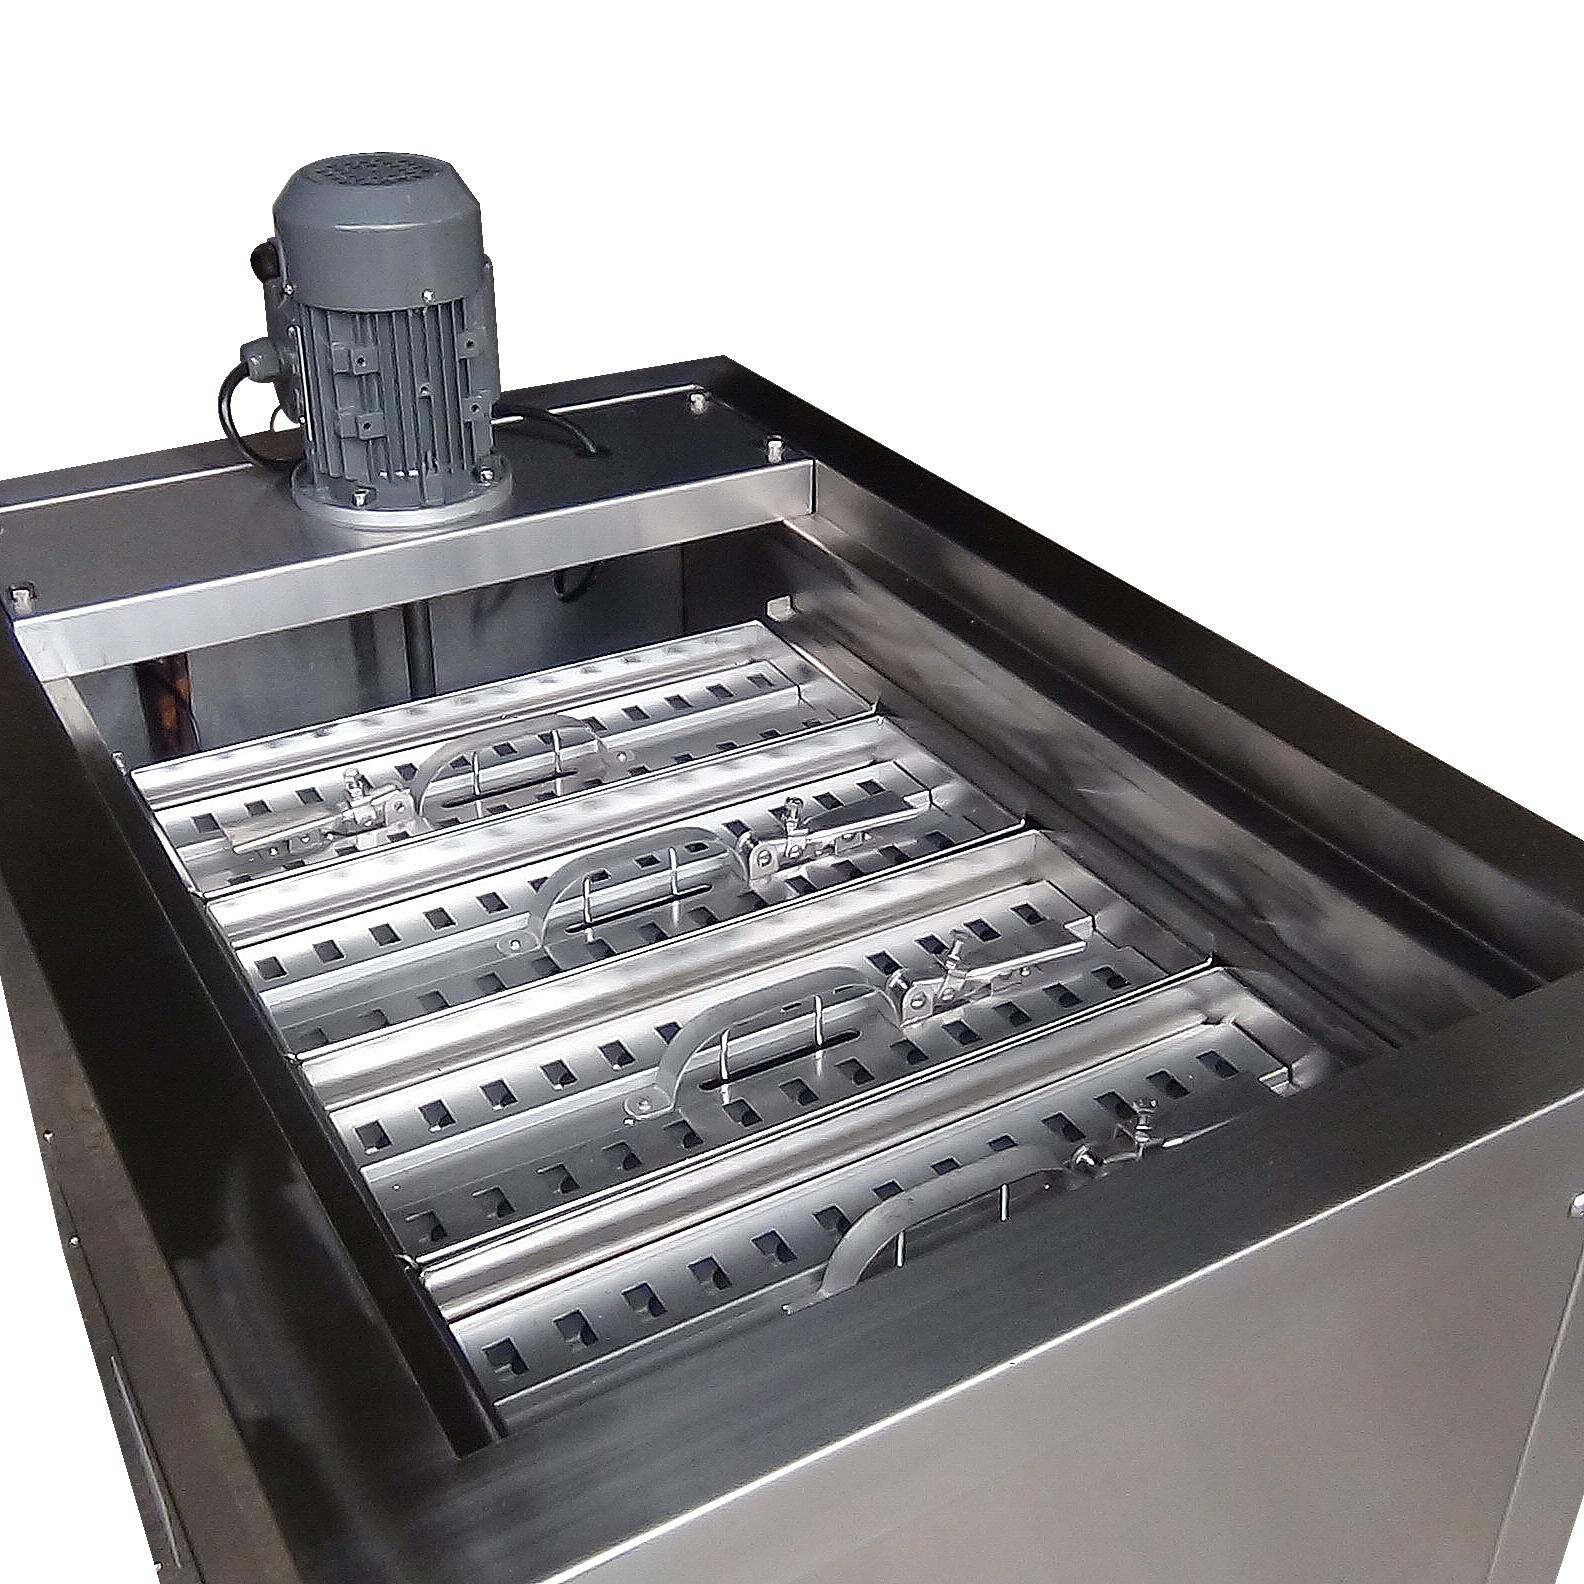 4 Brazil Mold Each Output 104 Popsicles Commercial Popsicle Machine For Sale